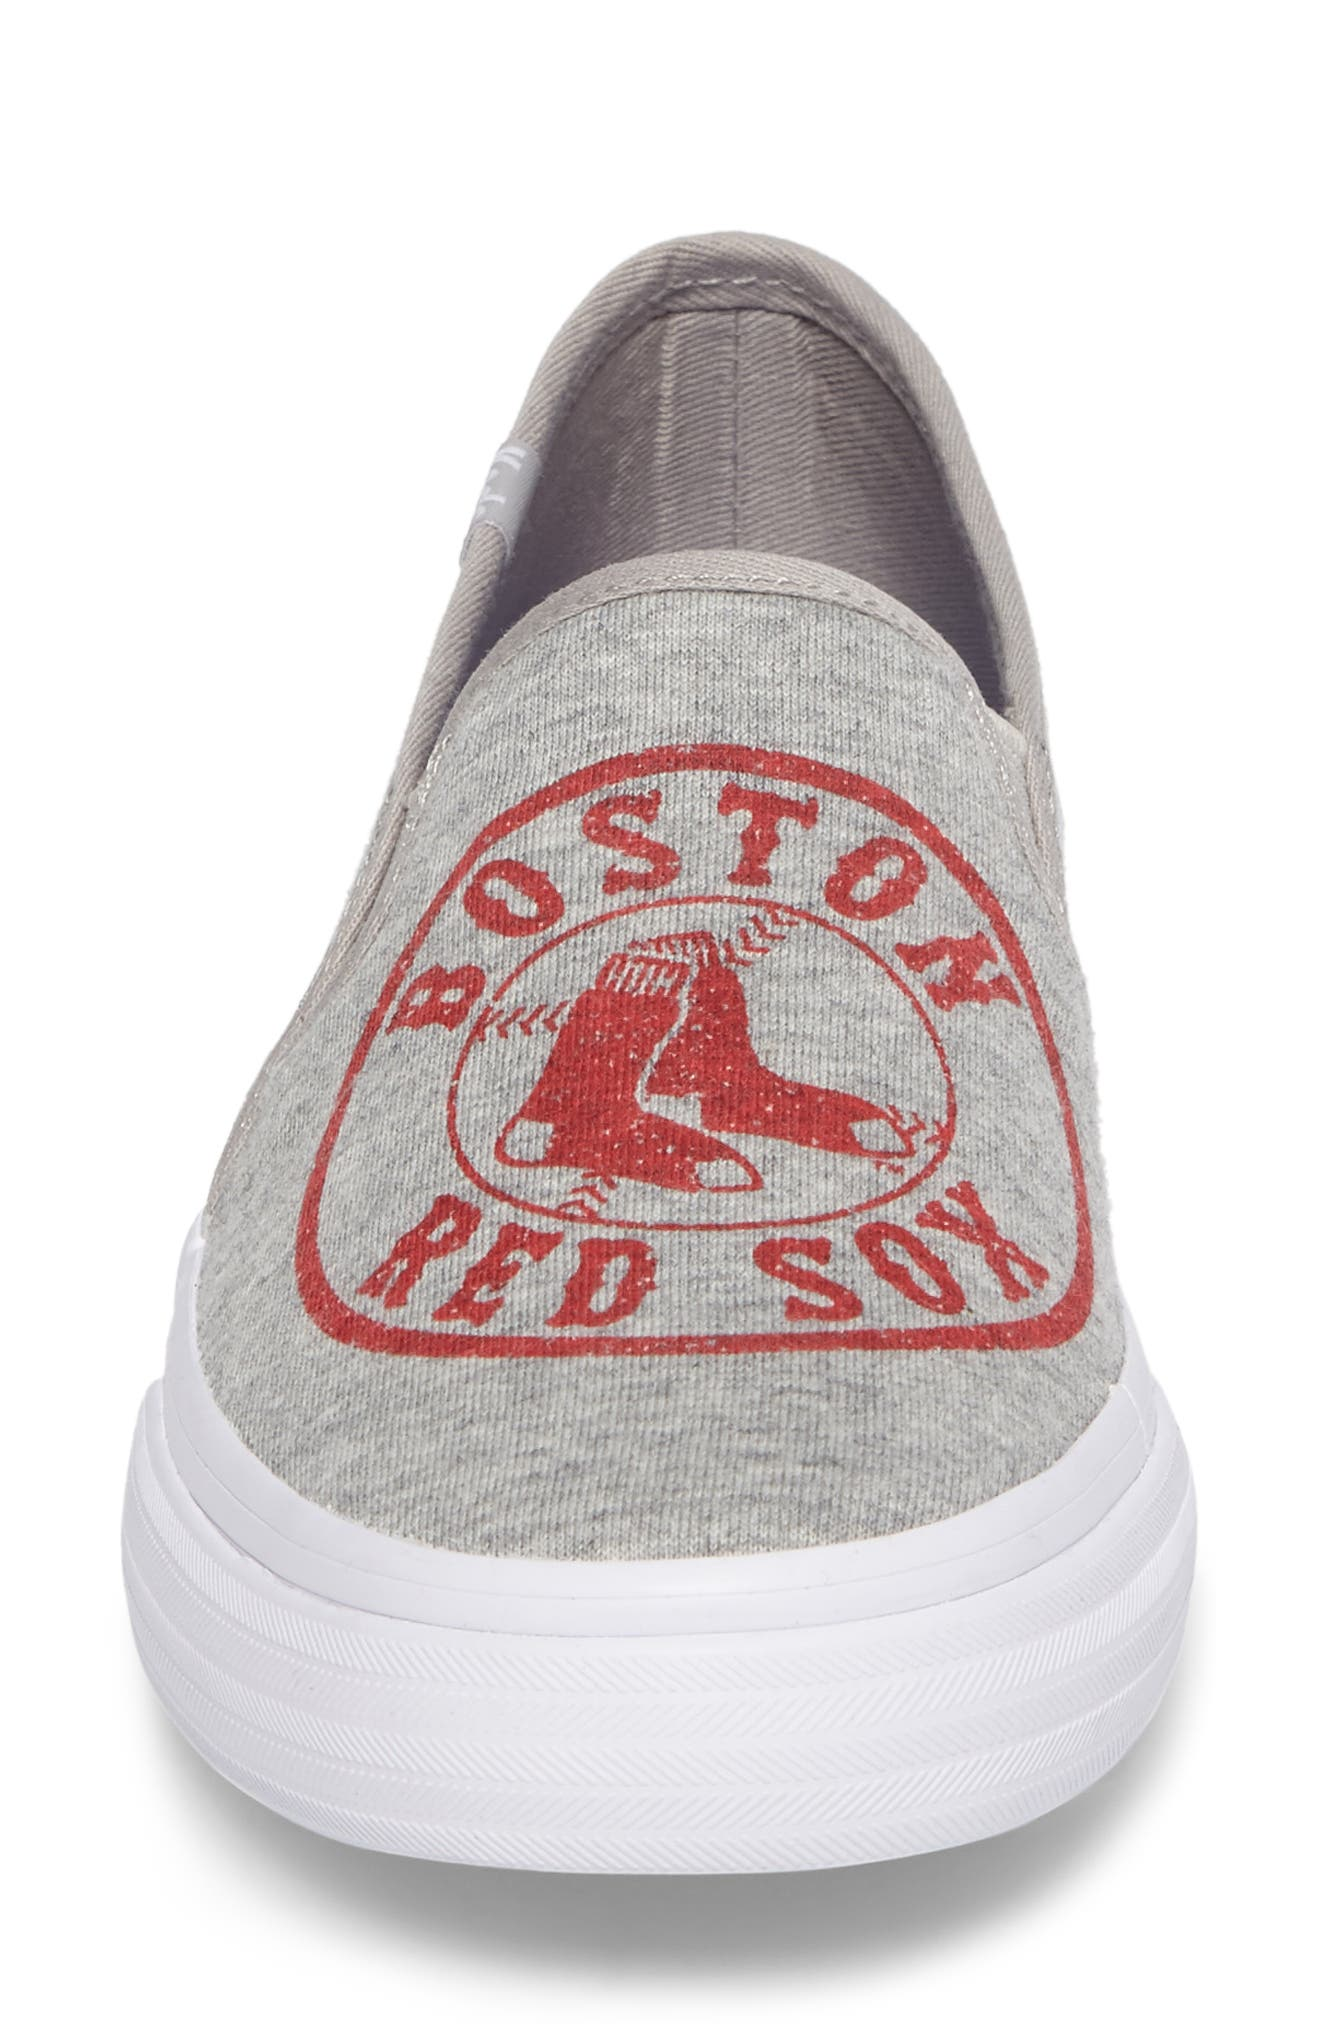 Alternate Image 4  - Keds® Double Decker Baseball Team Jersey Slip-On Sneaker (Women)